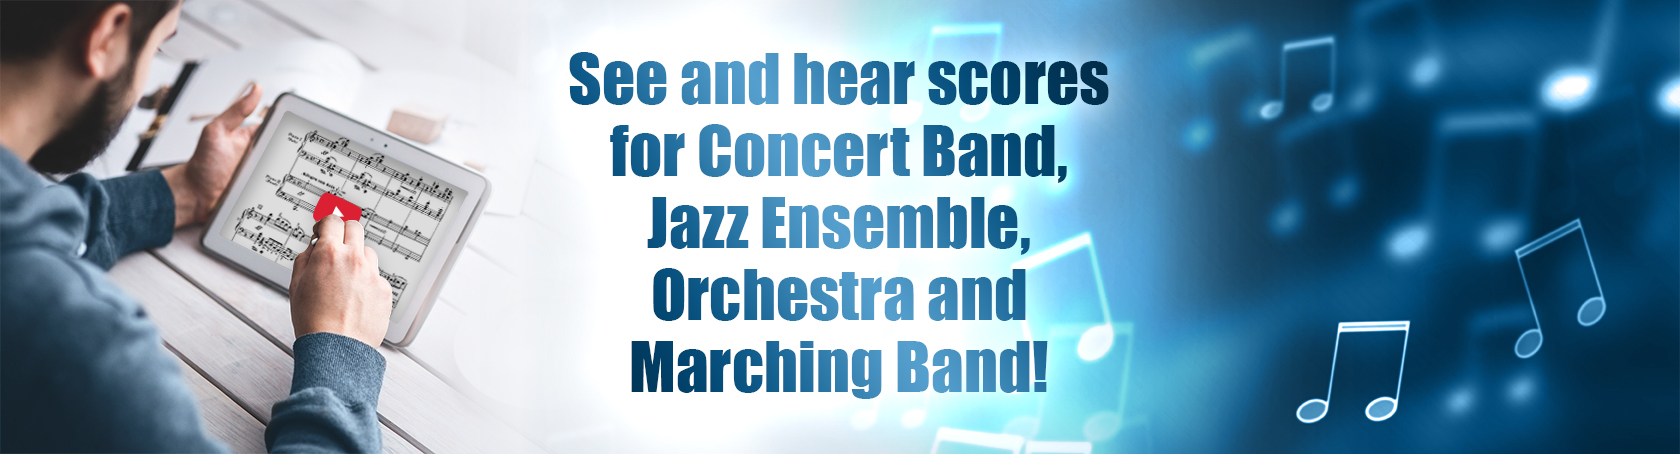 Scoreplay - See and hear scores for Concert Band, Jazz Ensemble, Orchestra and Marching Band